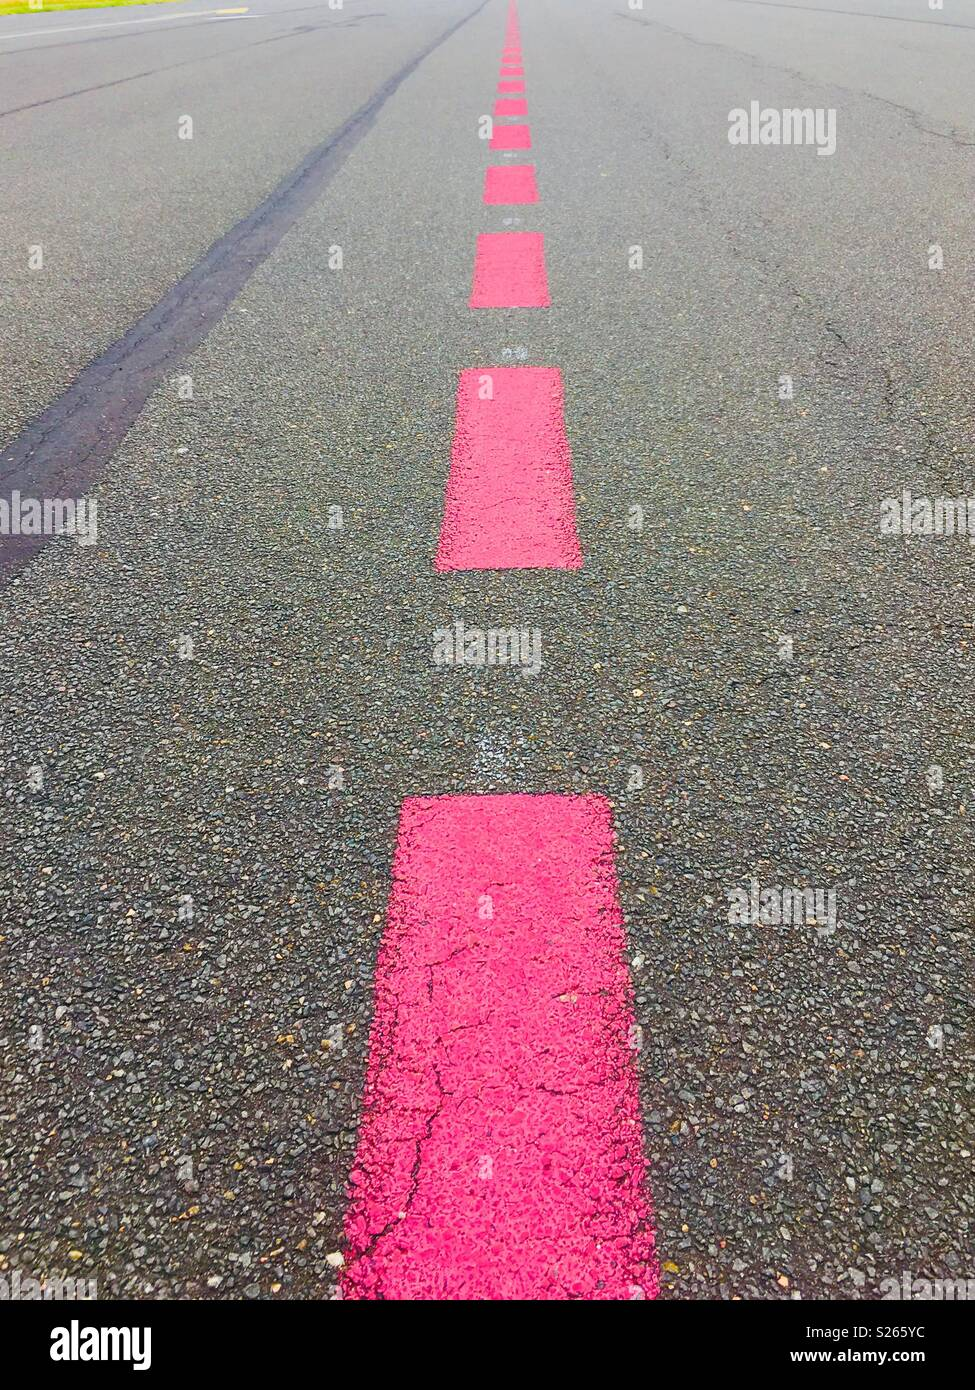 Pink road signage in Berlin Tempelhofer - Stock Image